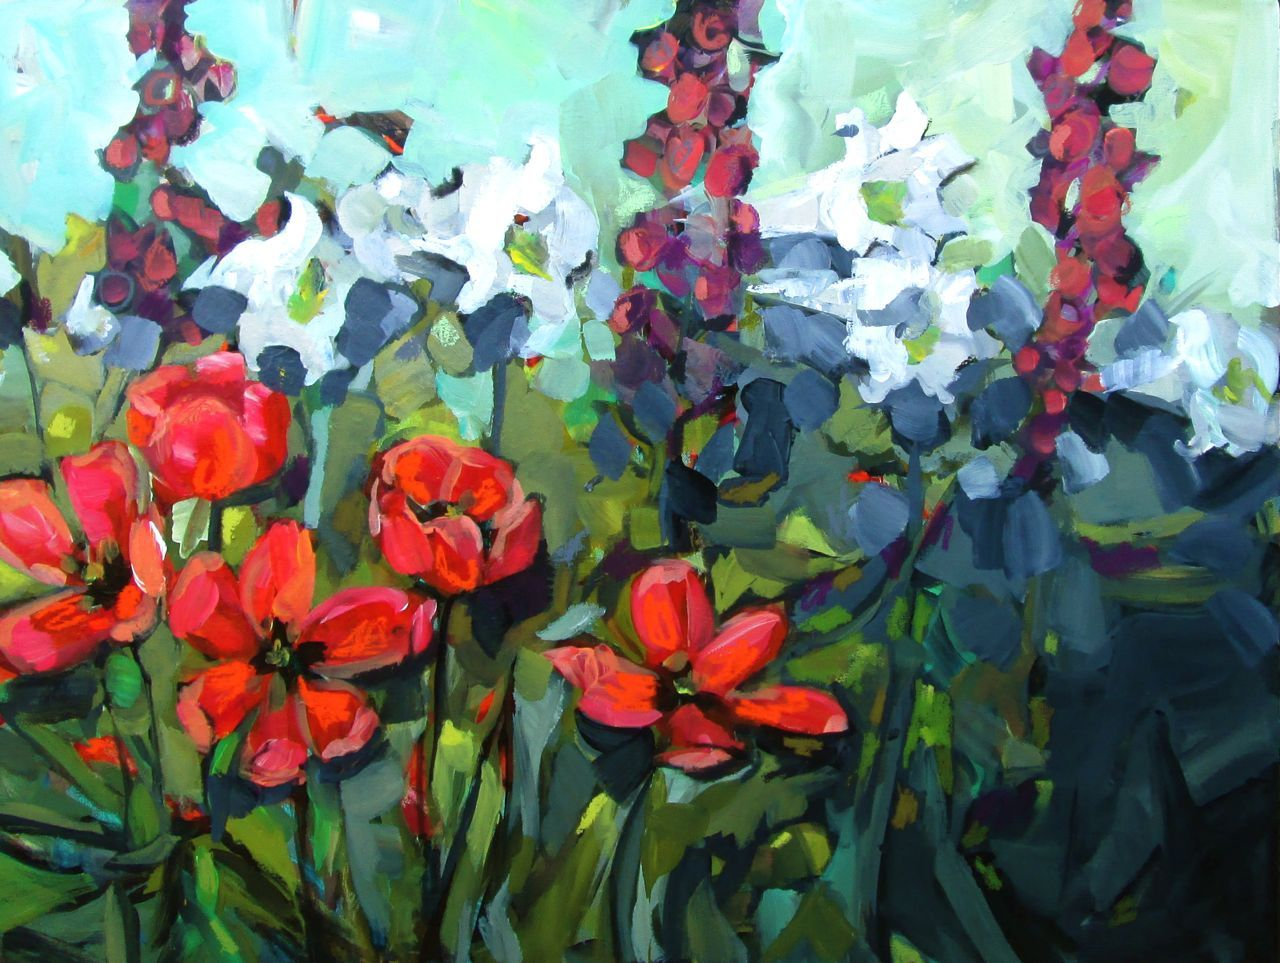 Jill Van Sickle 'Tulips, Lilies, Foxgloves'  painting, decor, floral, colorful, artwork